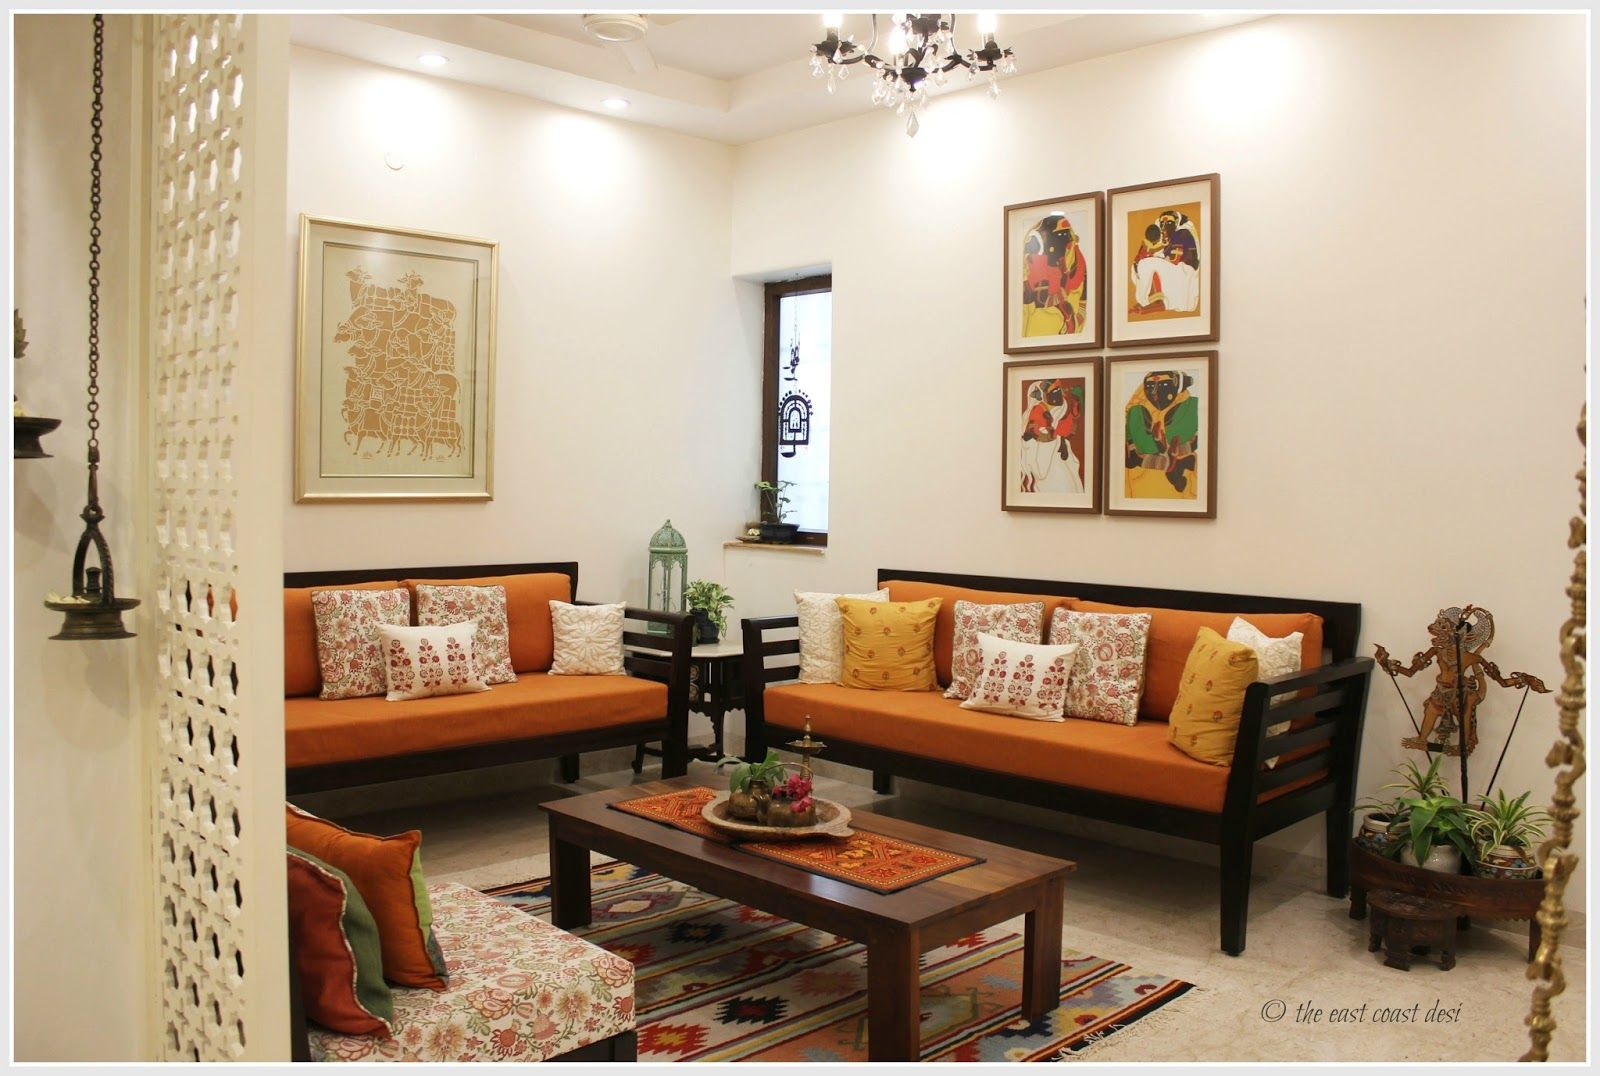 The East Coast Desi Keeping It Elegantly Eclectic Home Tour Indian Living Rooms Indian Home Interior House Beautiful Living Rooms